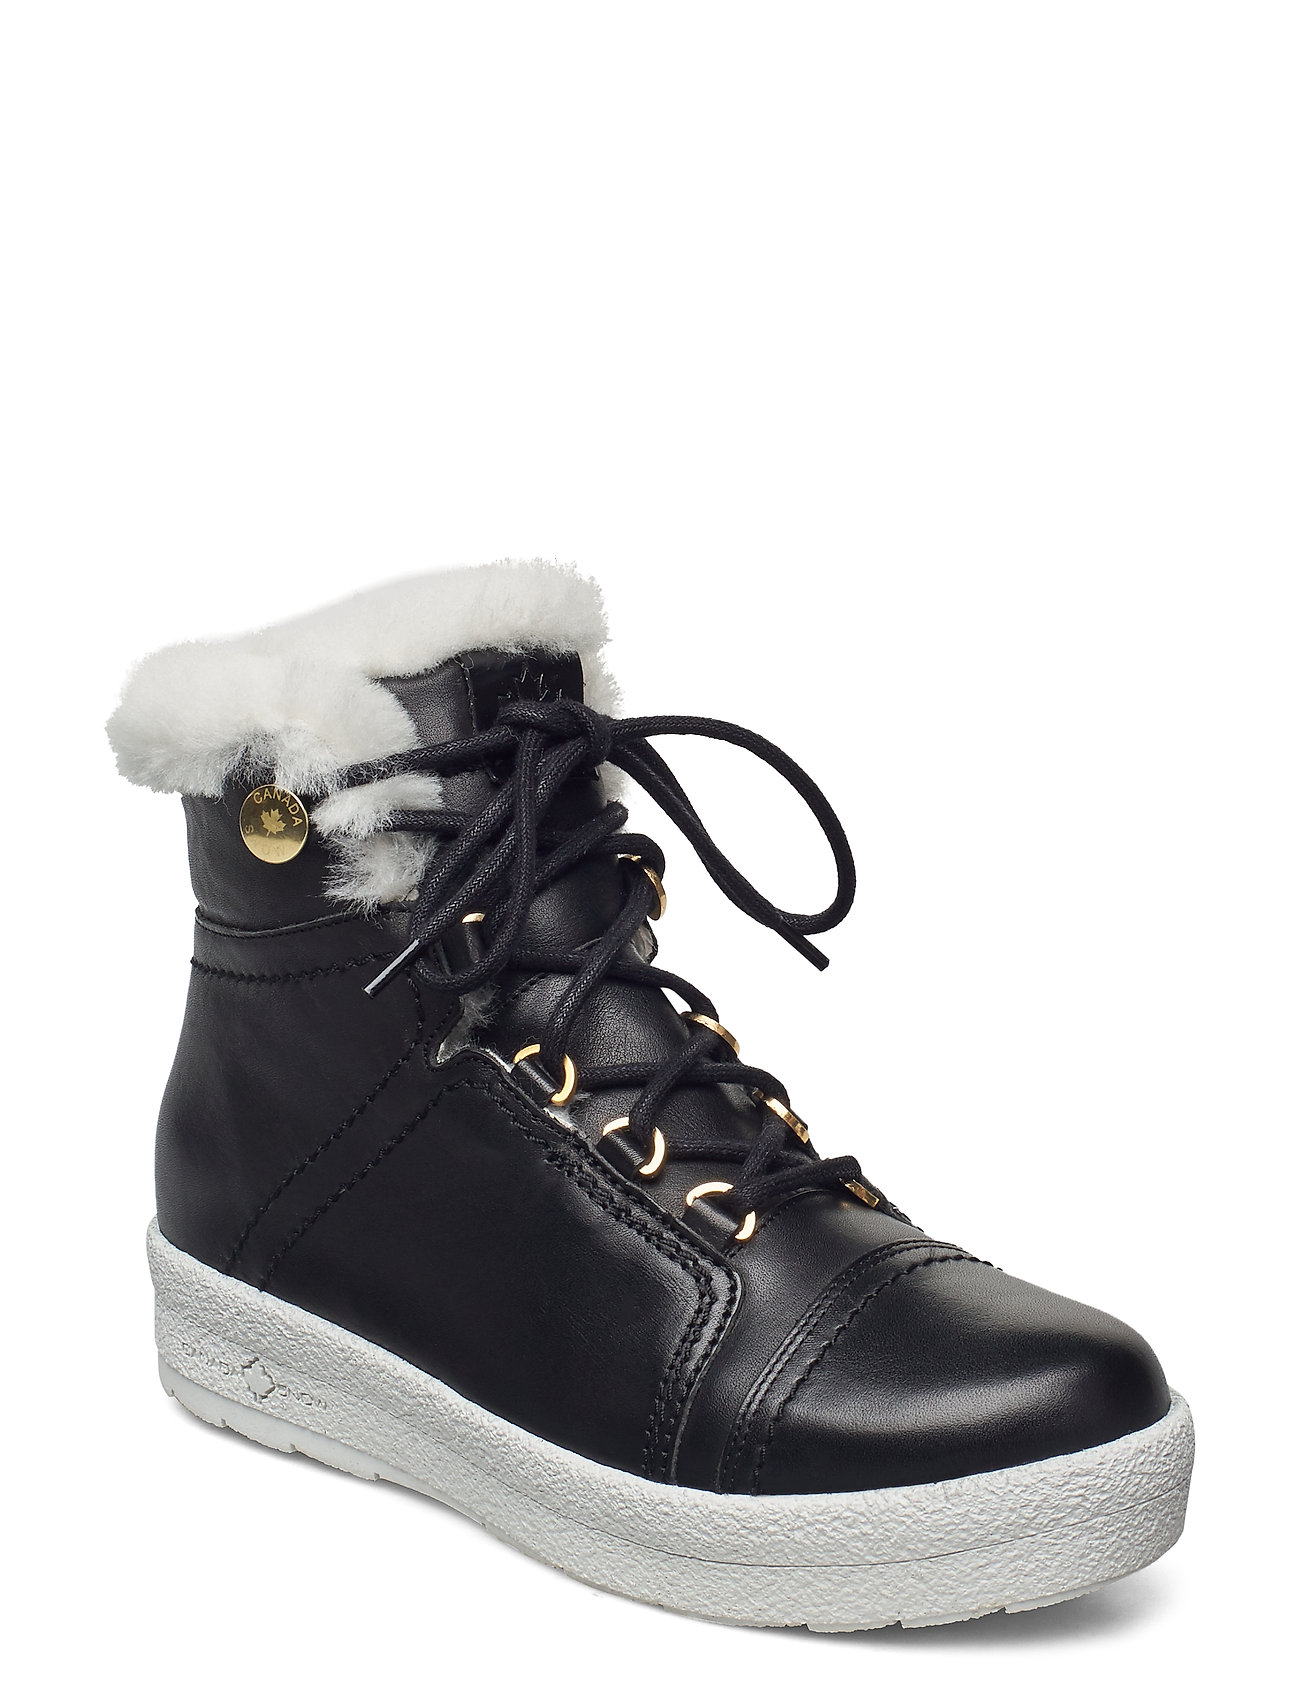 Image of Mount Baker Lace Up Shoes Boots Ankle Boots Ankle Boot - Flat Sort Canada Snow (3447796303)